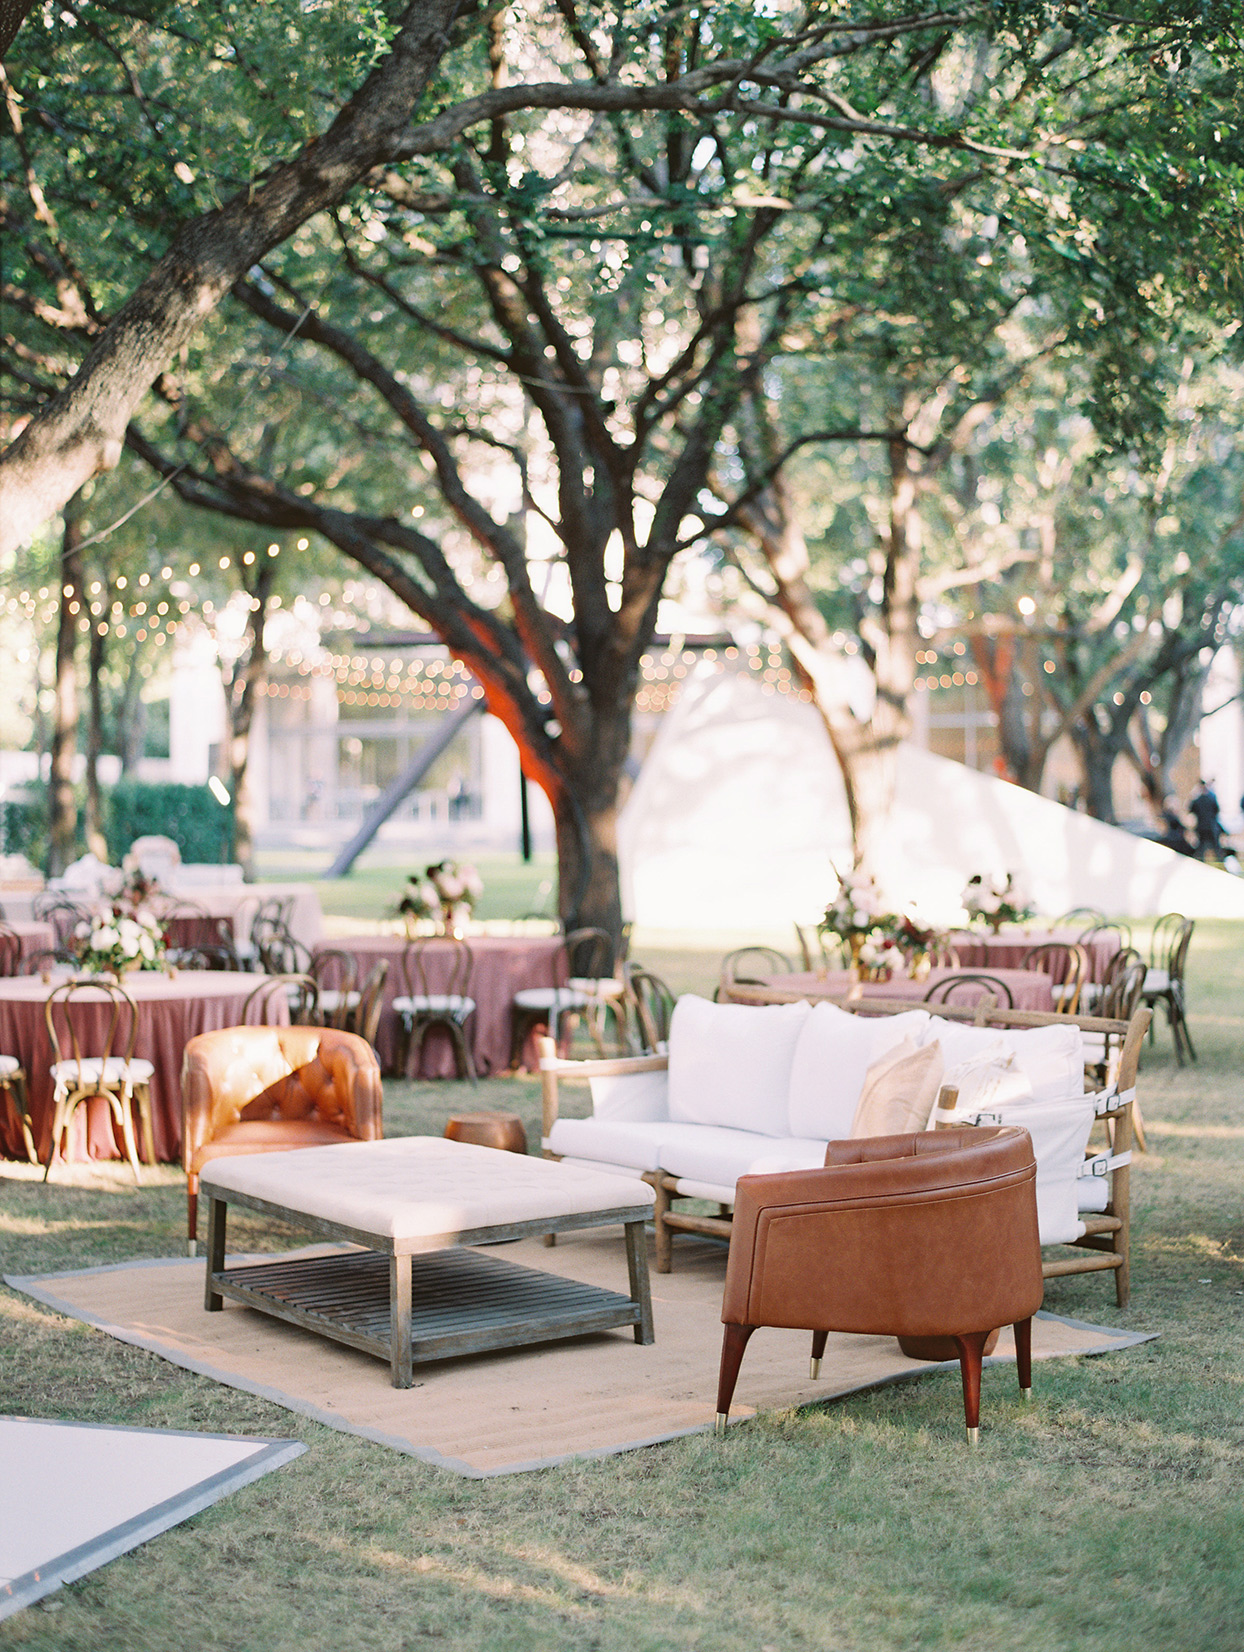 wedding outdoor lounging area with white couches and leather chairs